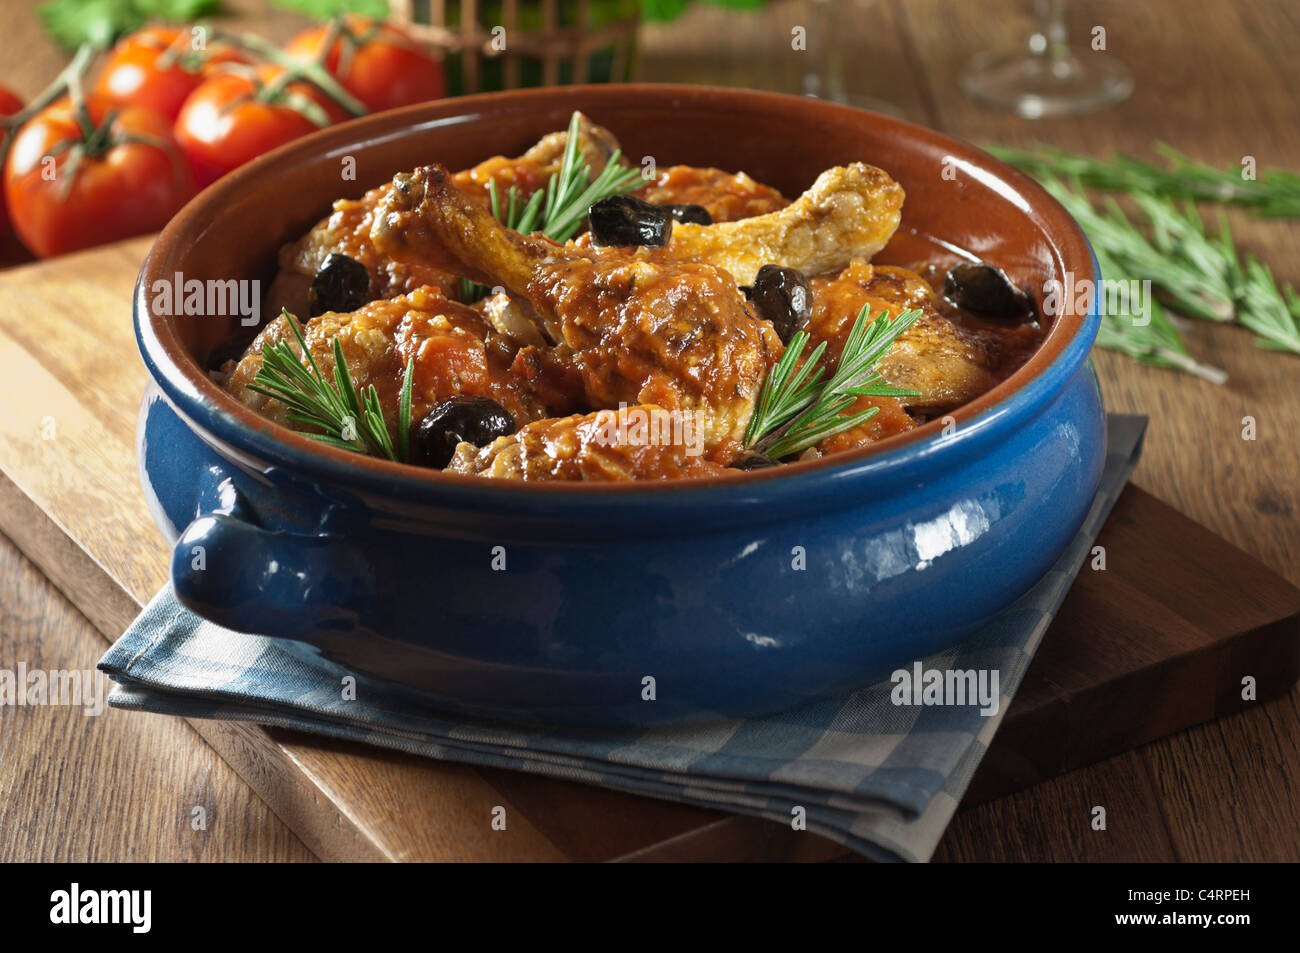 Poulet sauté la cuisine italienne Photo Stock